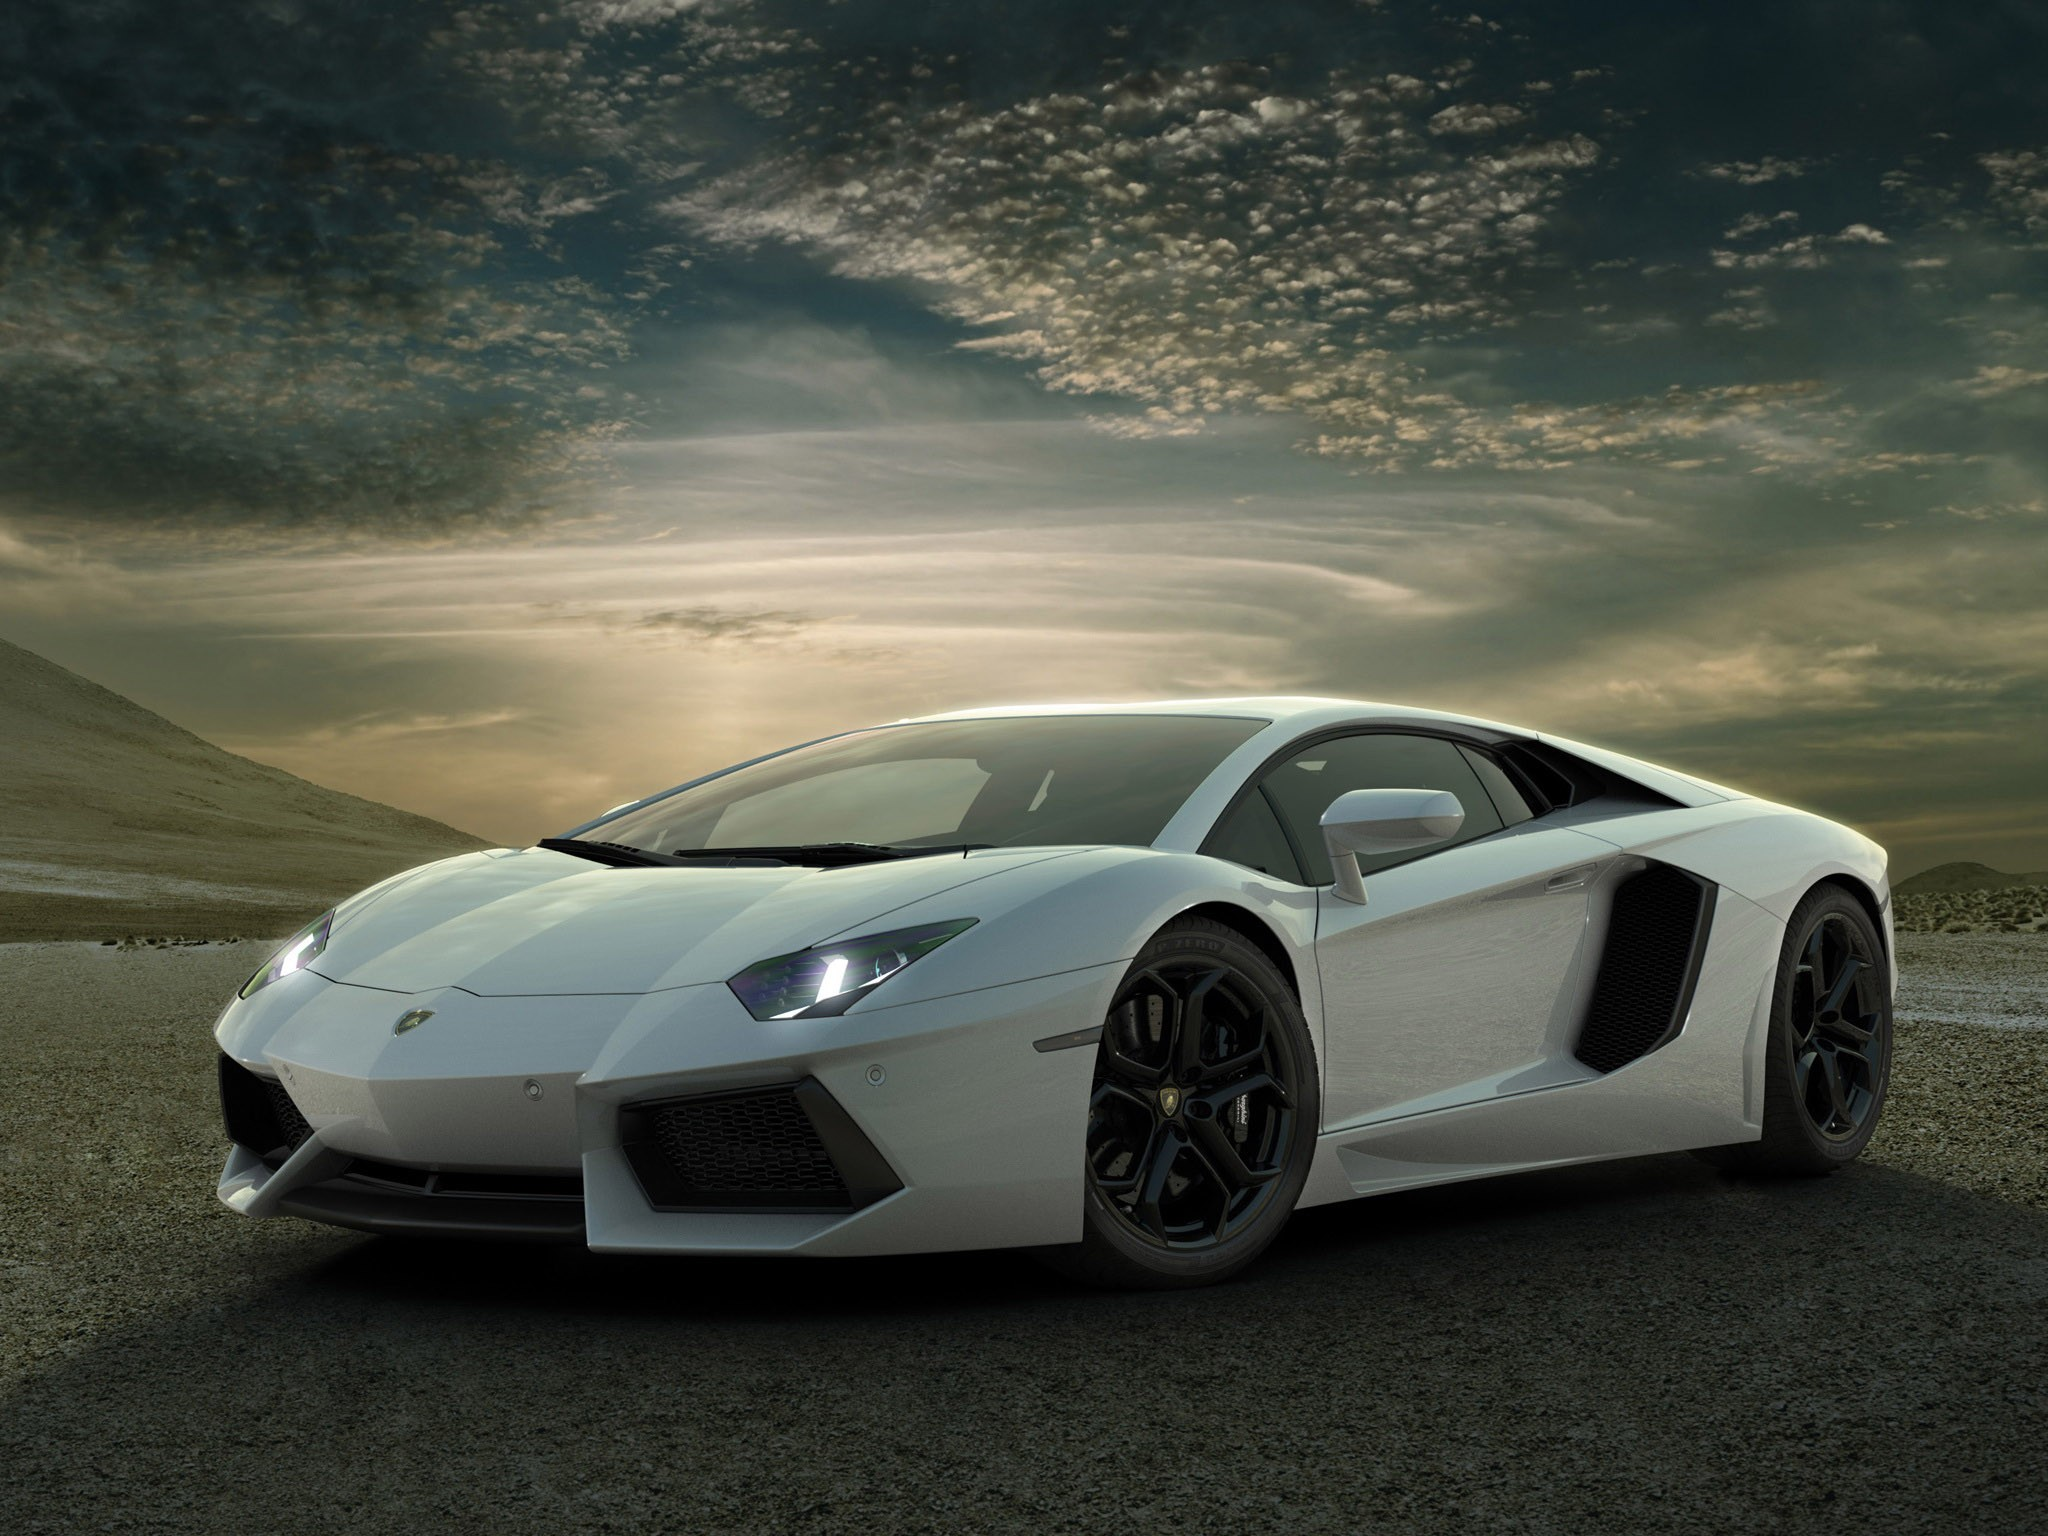 lamborghini aventador skyscapes wallpaper 2048x1536 15173 2048x1536